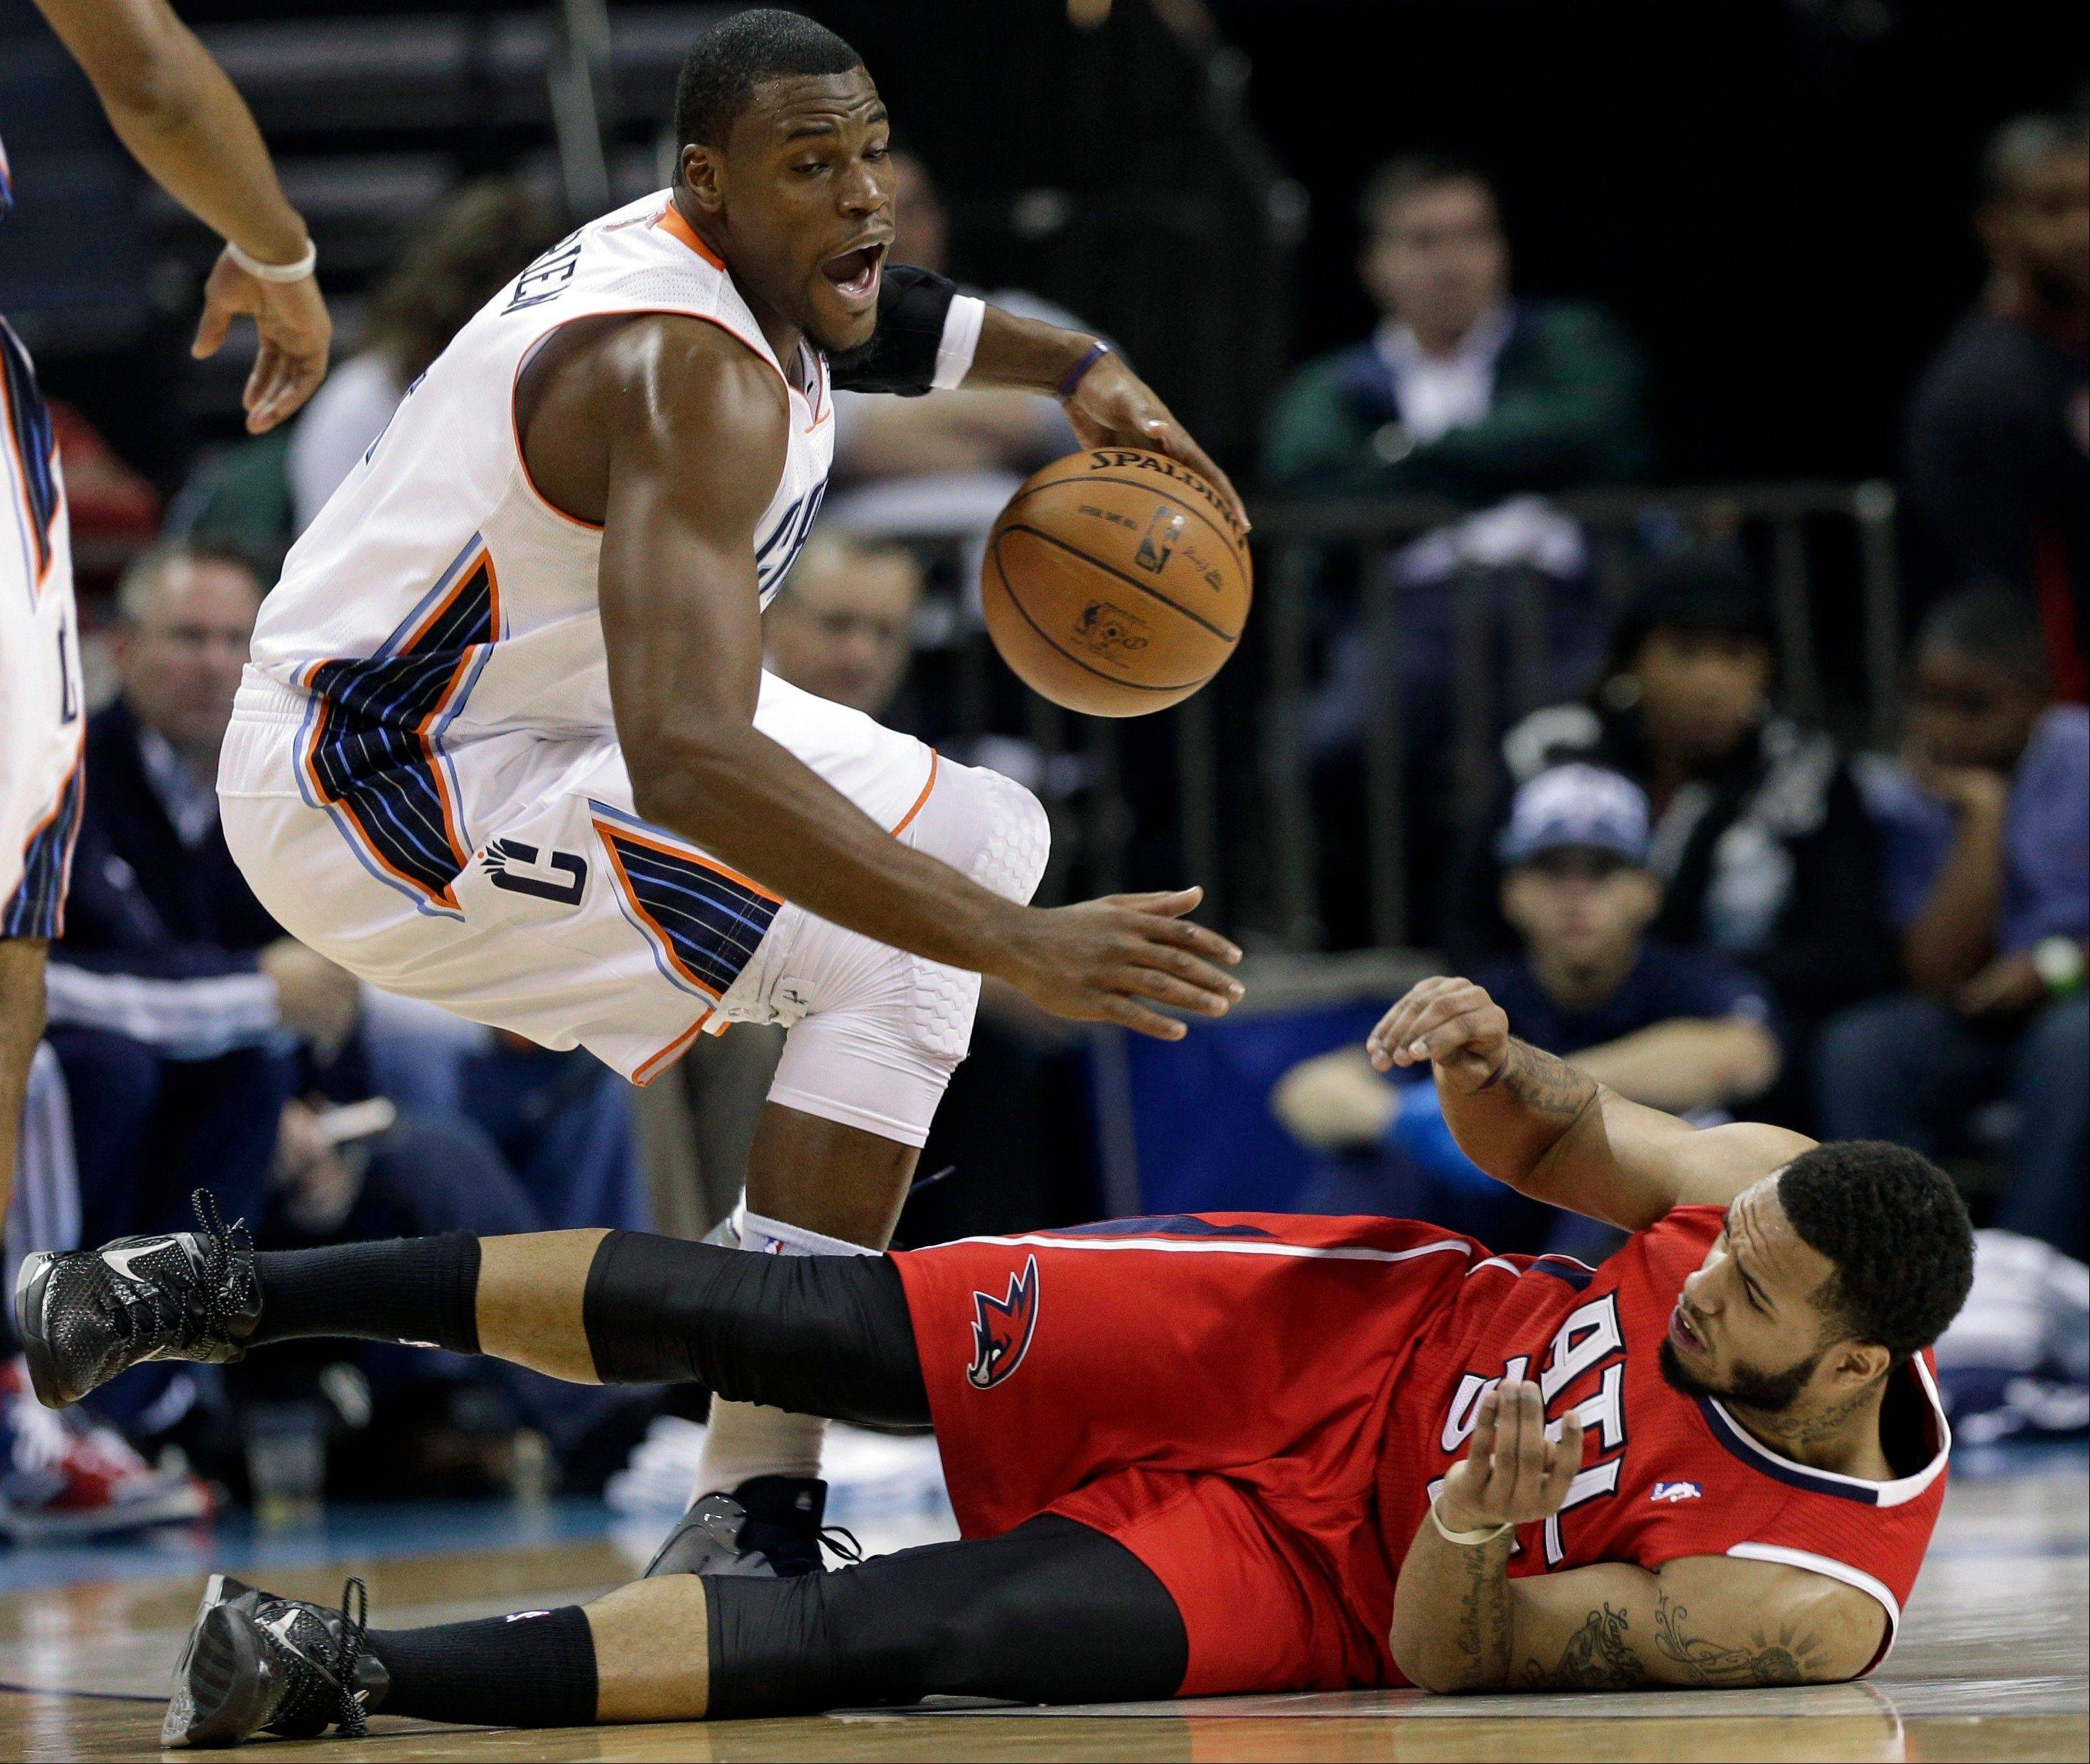 Charlotte Bobcats' Jeff Adrien, top, steals the ball from Atlanta Hawks' Mike Scott, bottom, during the first half of an NBA basketball game Wednesday night in Charlotte, N.C.